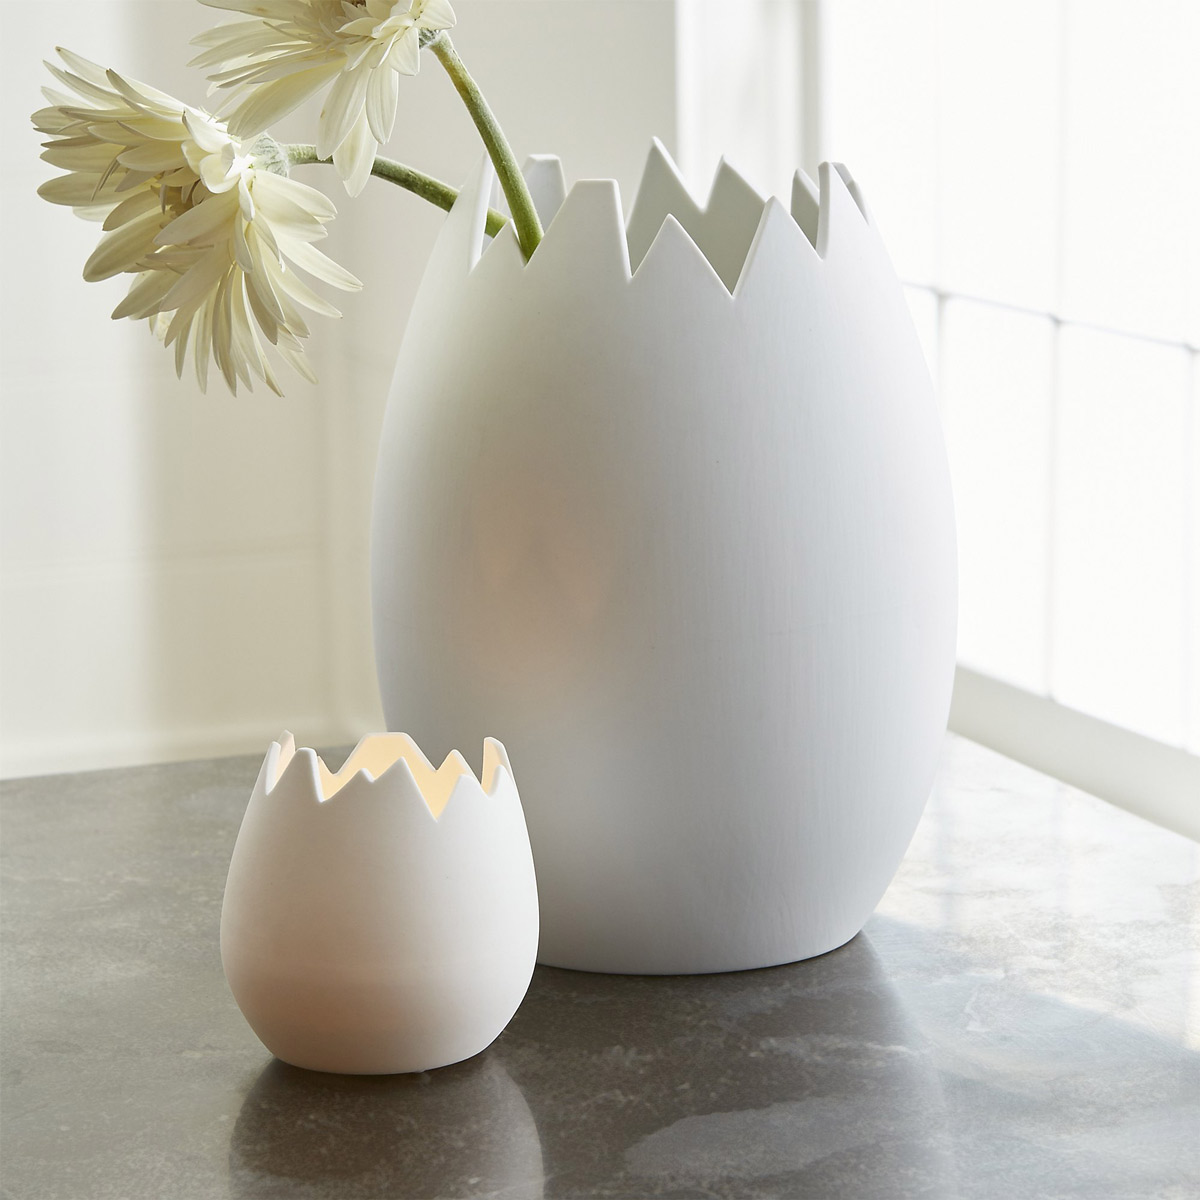 The green head browse living vases page 1 cracked eggshell vase reviewsmspy